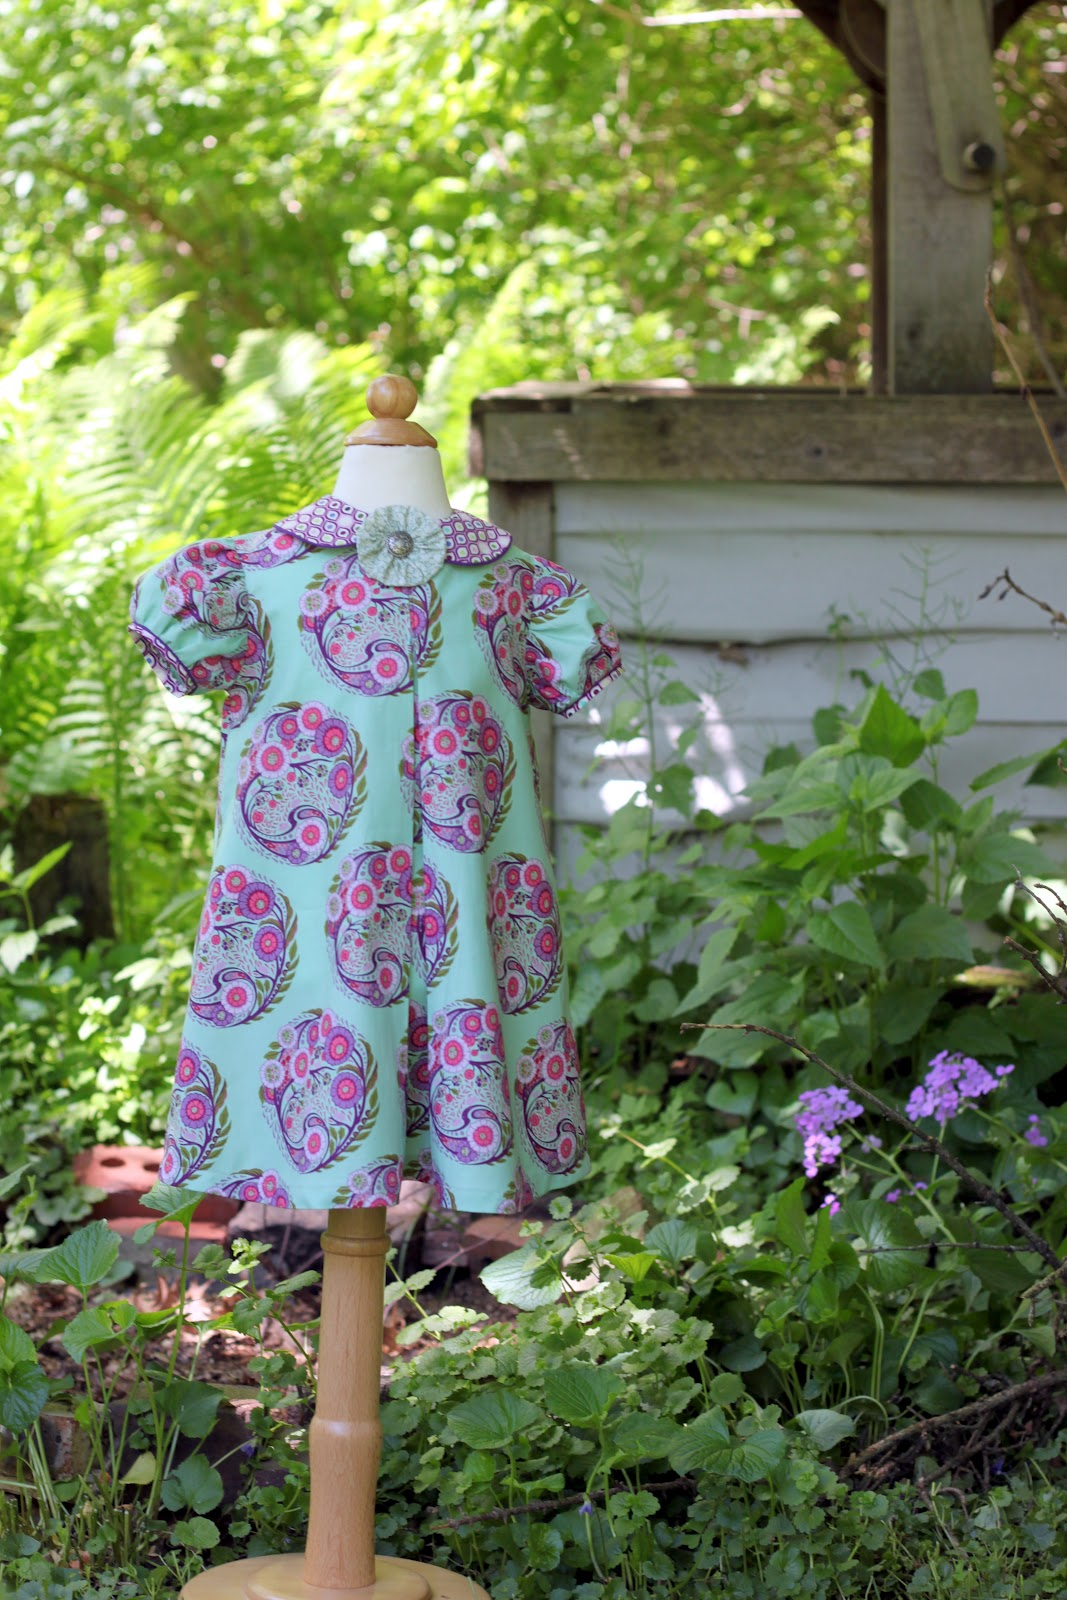 So i leave you with some pictures of this sweet classic vintage may dress that were taken out by the well in front of our house the well no longer works